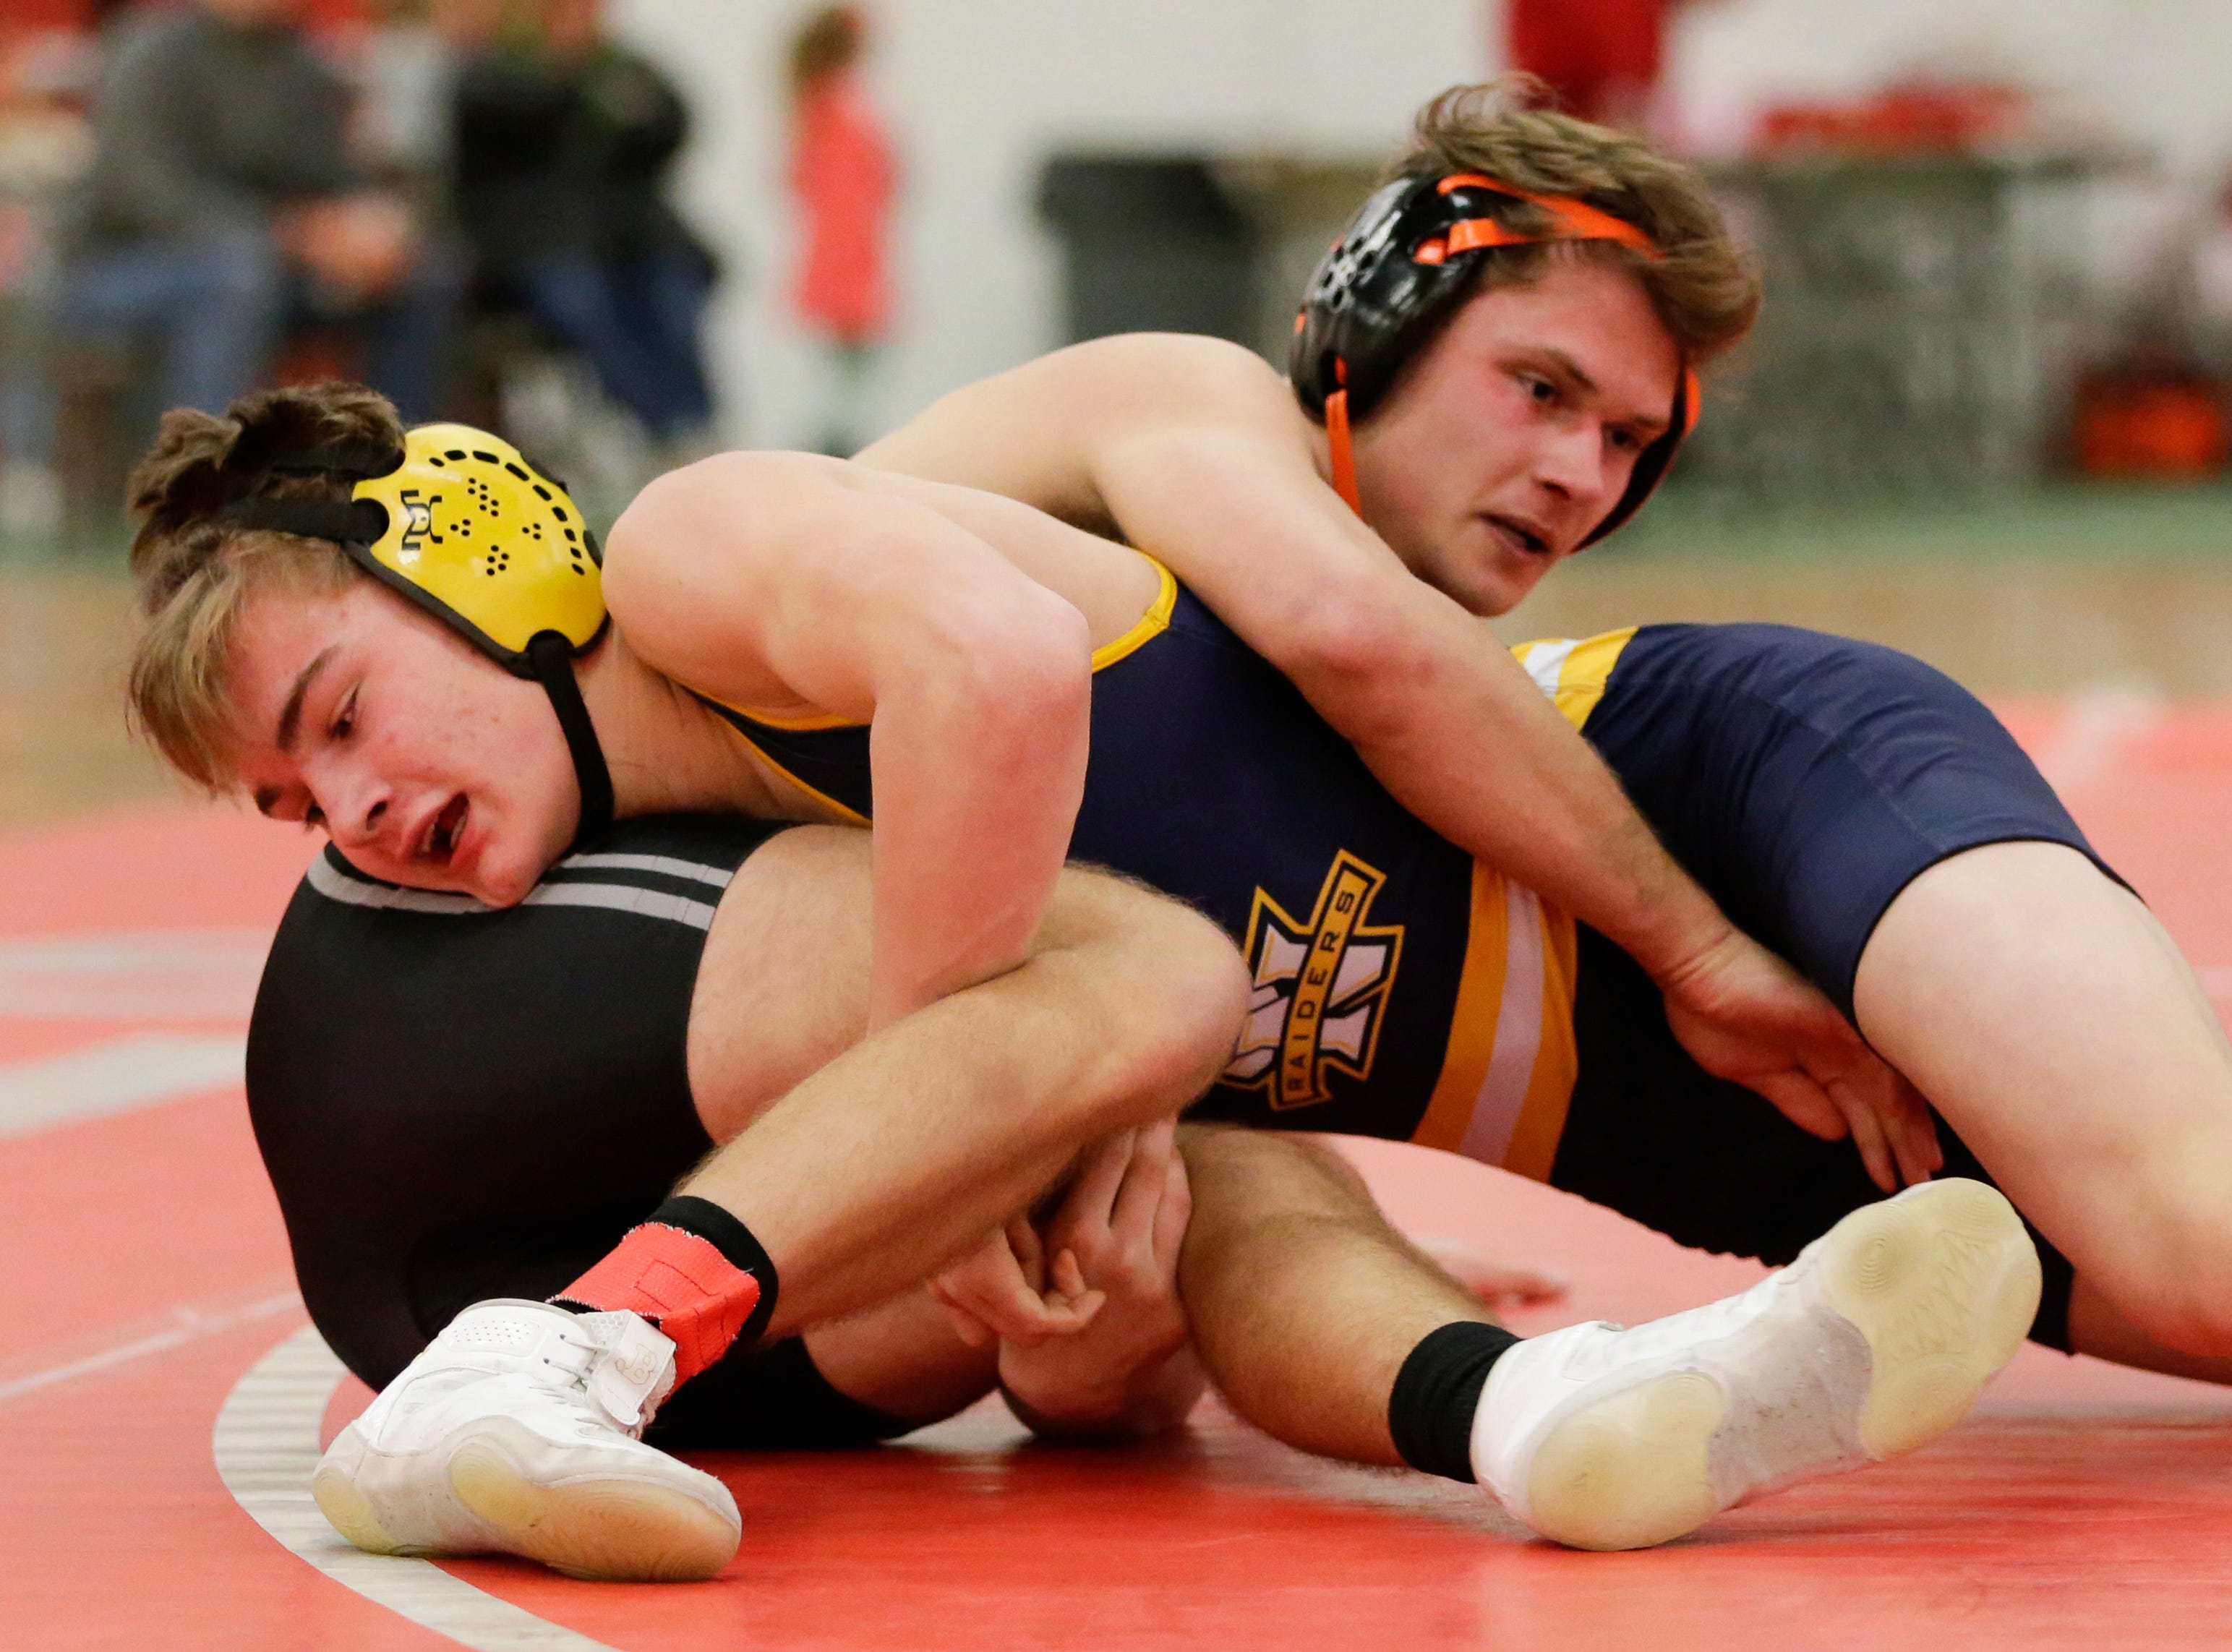 Sheboygan North's Zane Tinkle wrestles Plymouth's Joe Mertes in the 152 weight class during the WIAA D1 Regionals at Manitowoc Lincoln High School Saturday, February 9, 2019, in Manitowoc, Wis. Joshua Clark/USA TODAY NETWORK-Wisconsin